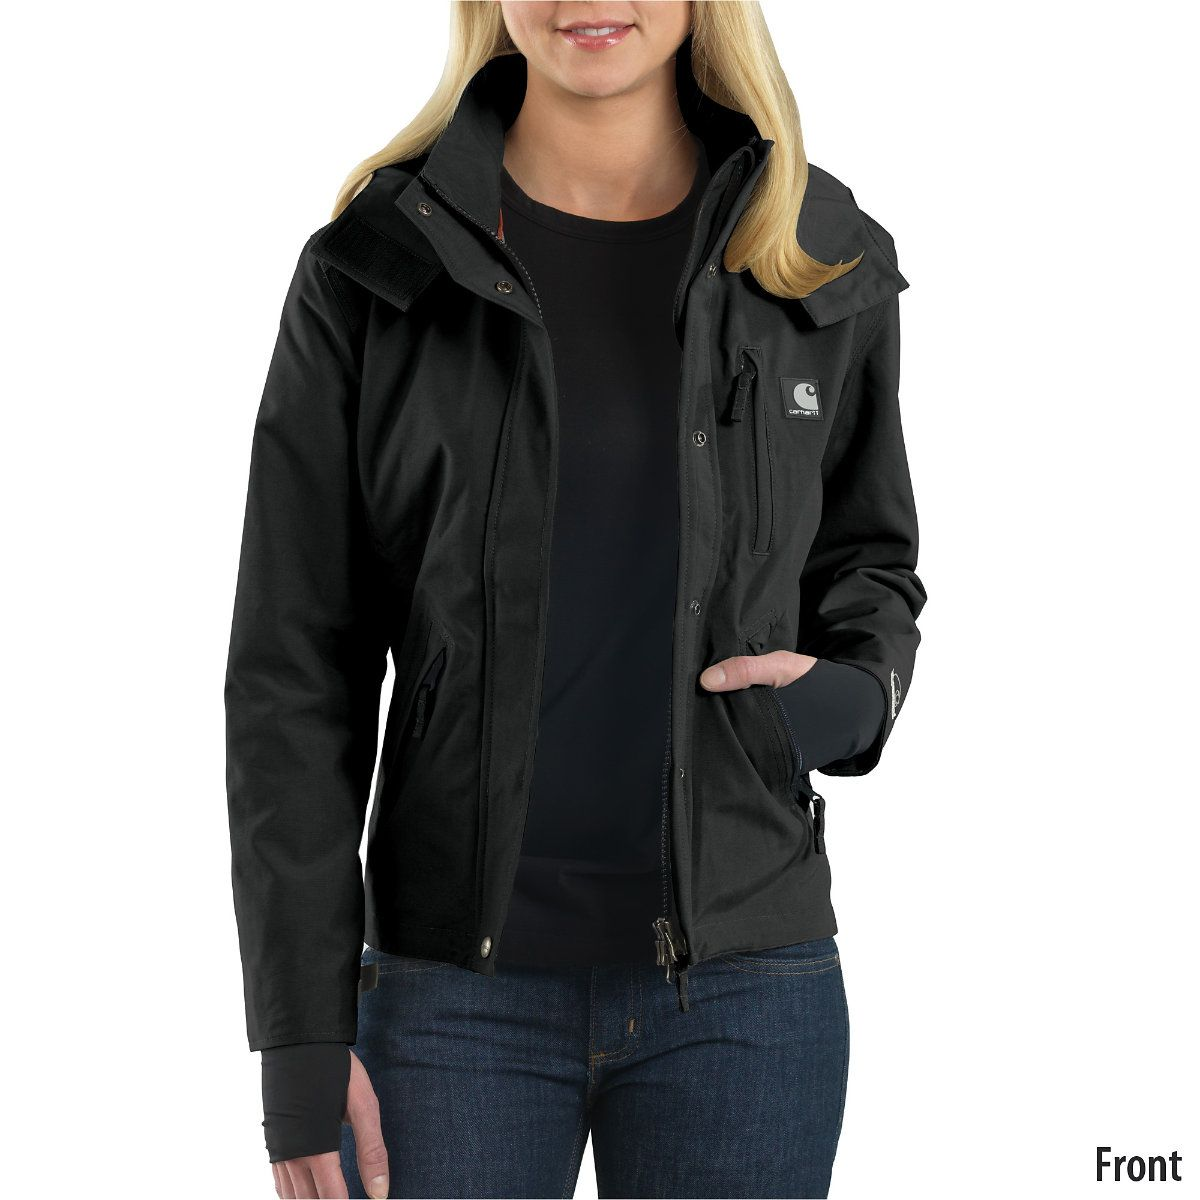 Carhartt Womens Waterproof Breathable Jacket | Clothing & Shoes ...